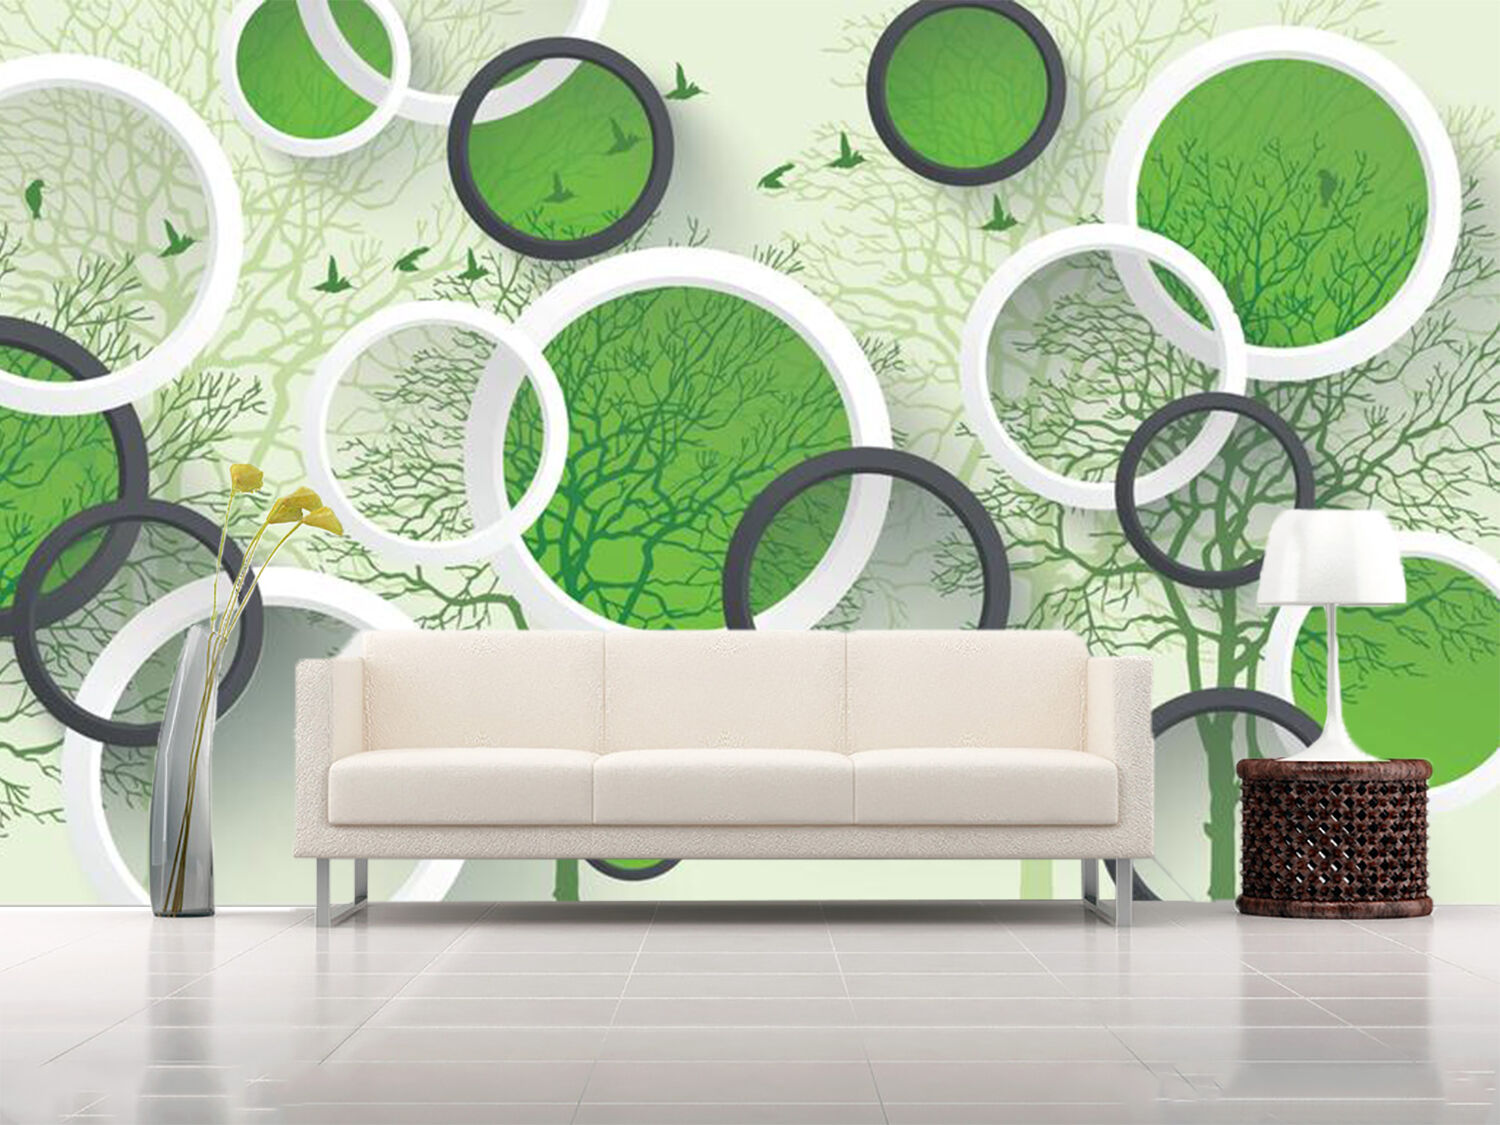 3D Rings Trees And Birds 39 Wallpaper Decal Dercor Home Kids Nursery Mural Home